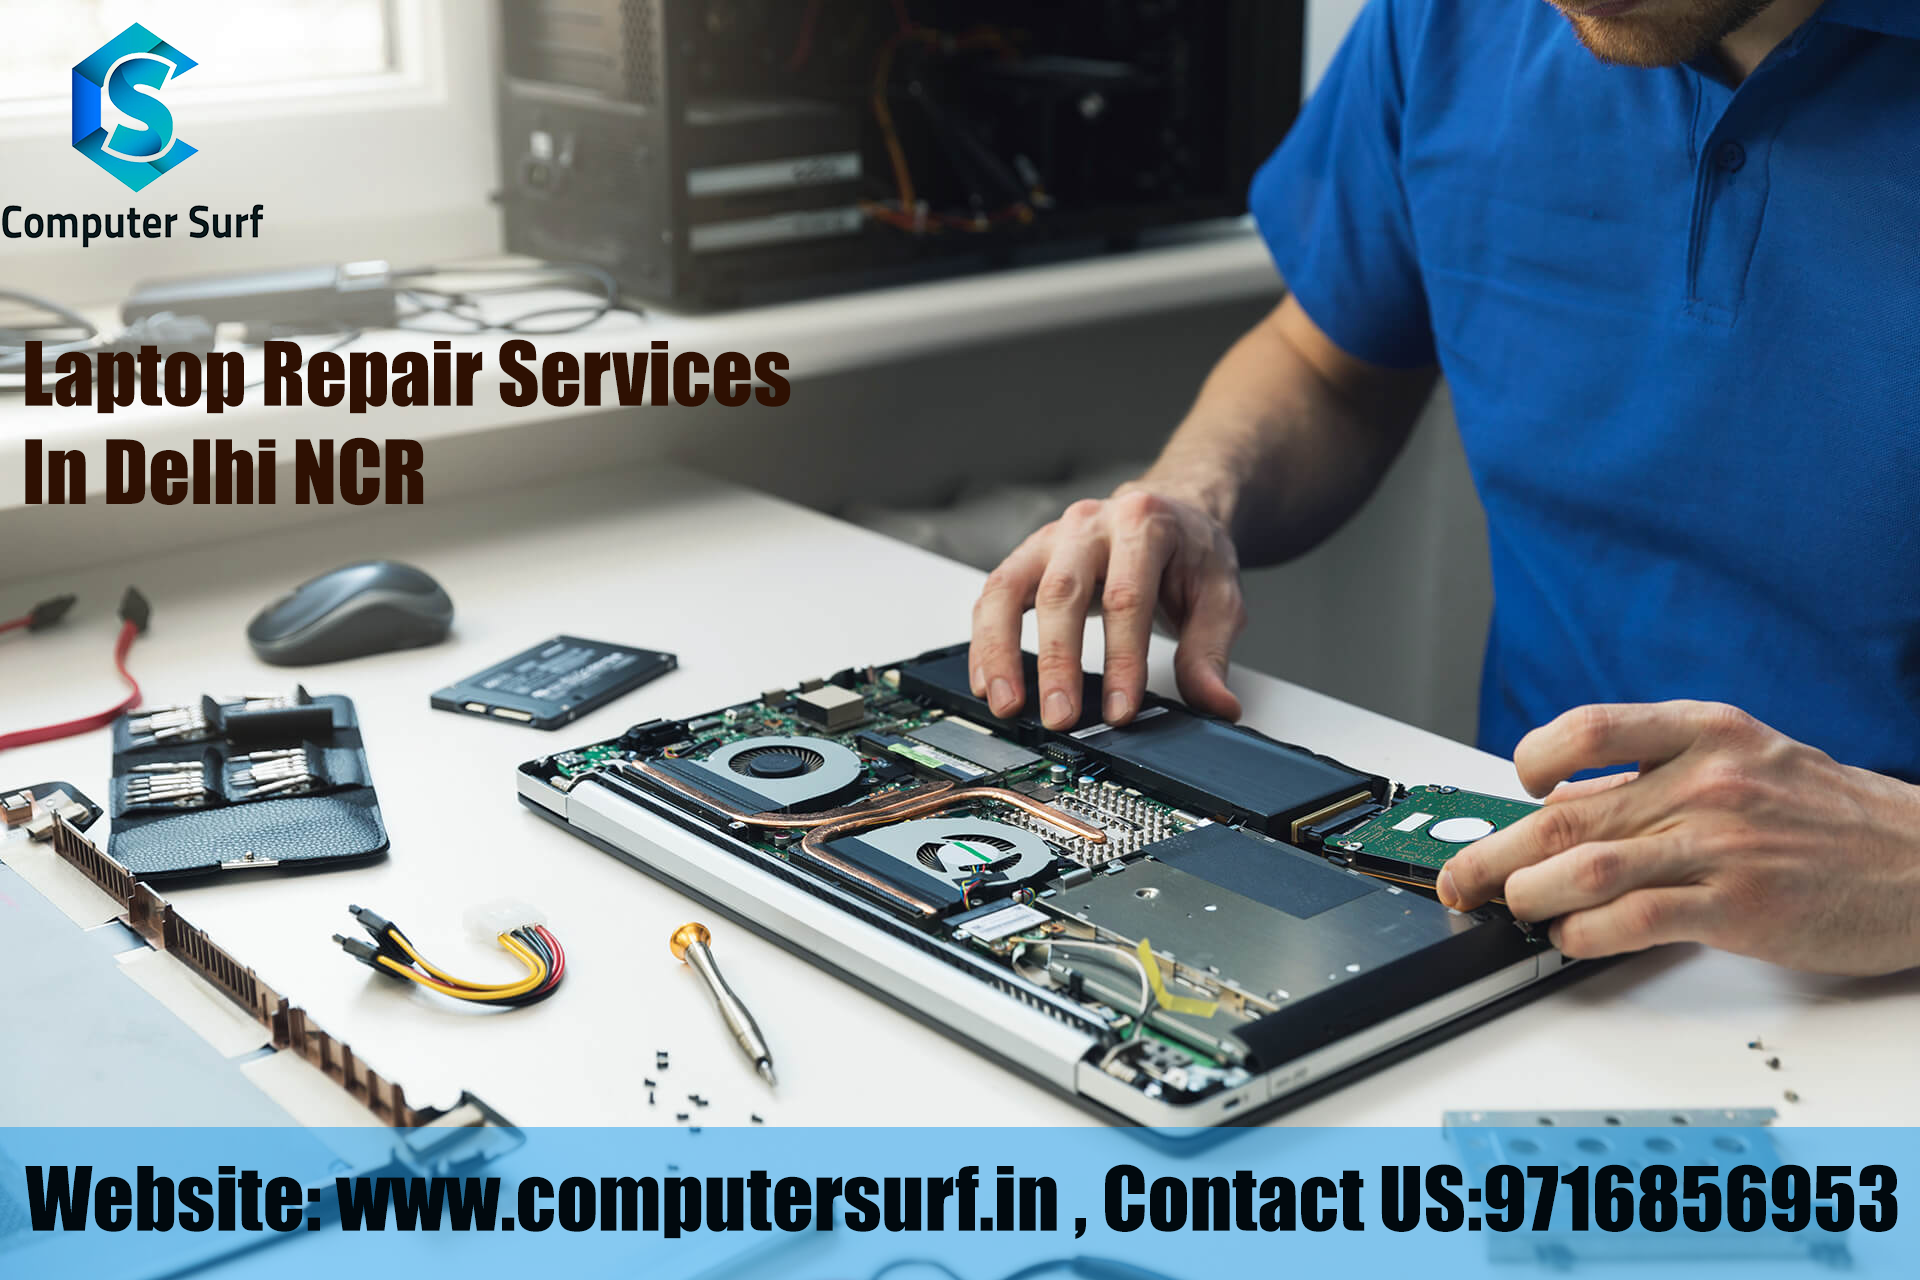 Find one of the best Laptop repair services shop in Delhi